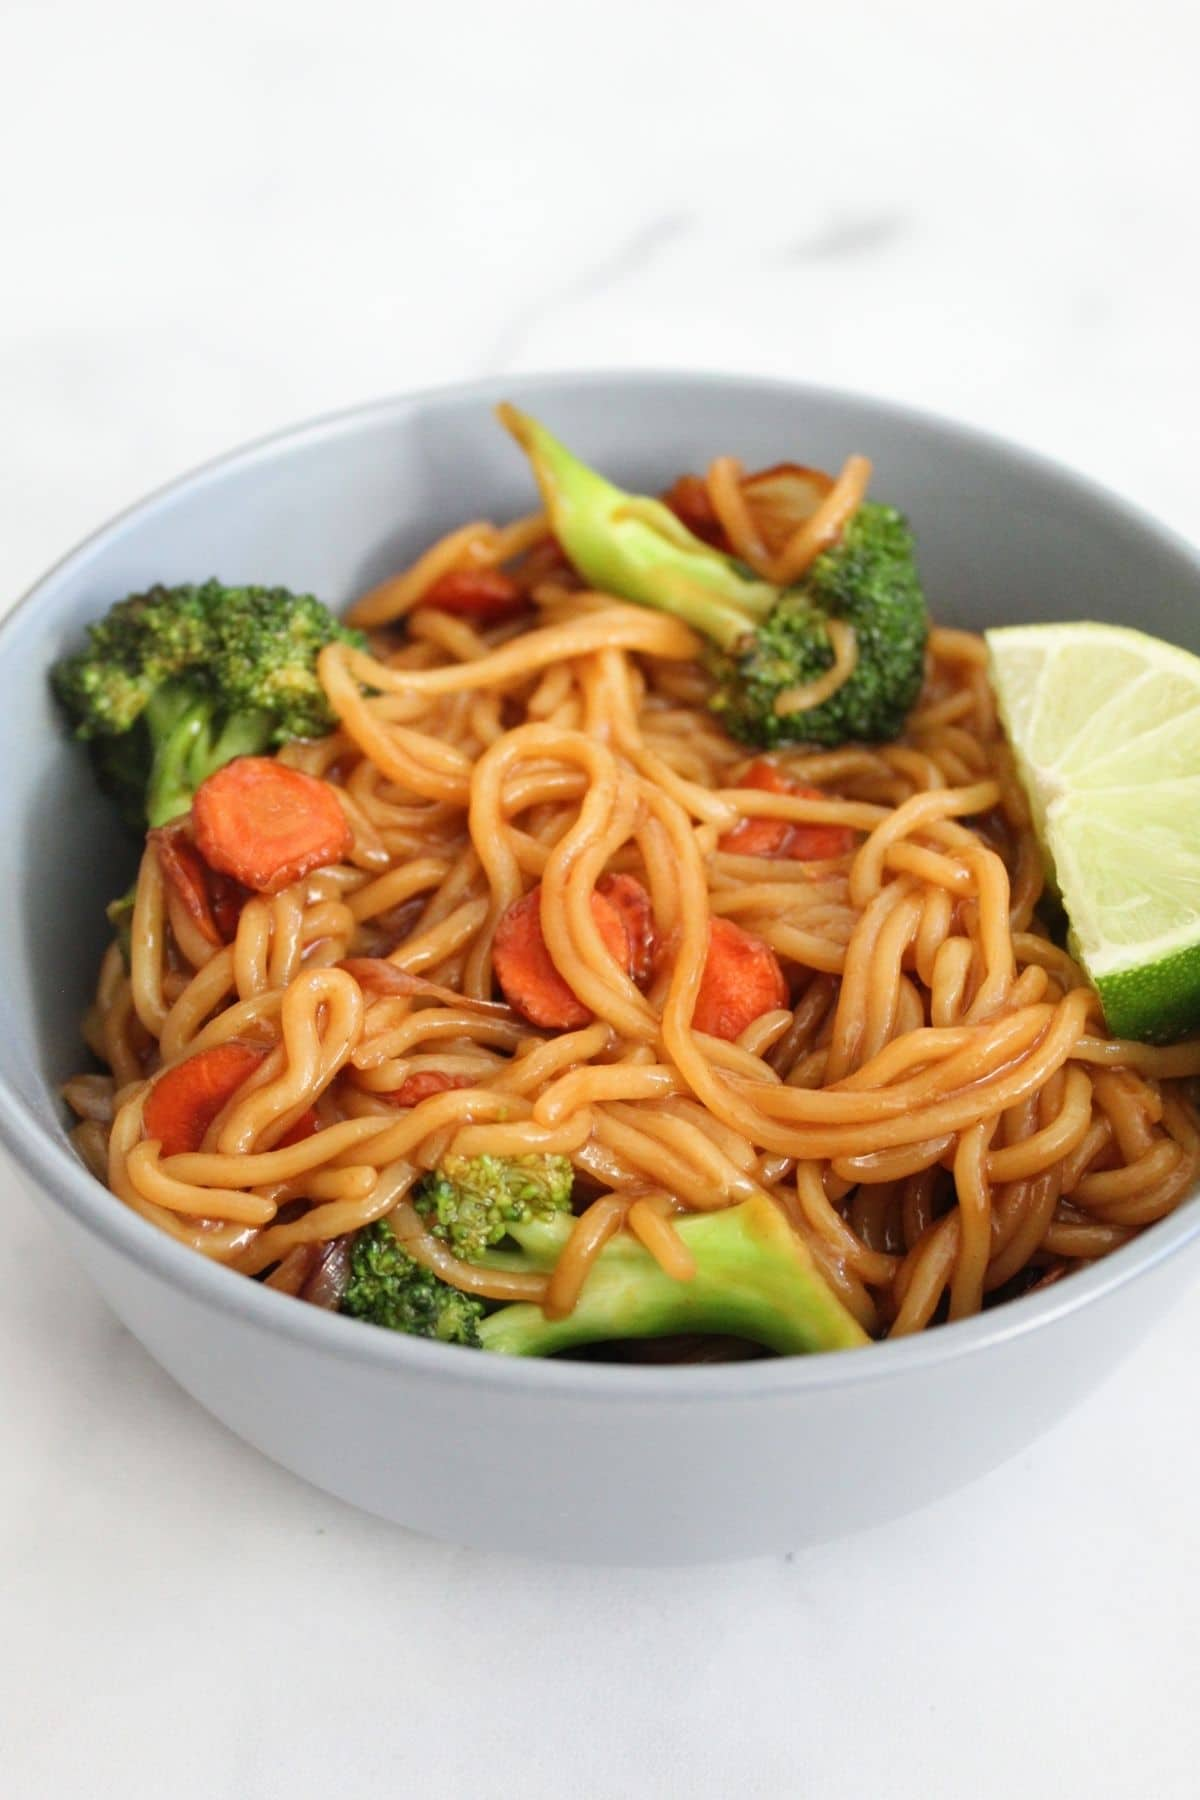 ramen noodle recipe with ramen noodles, veggies, and a lime wedge in a blue bowl on white marble